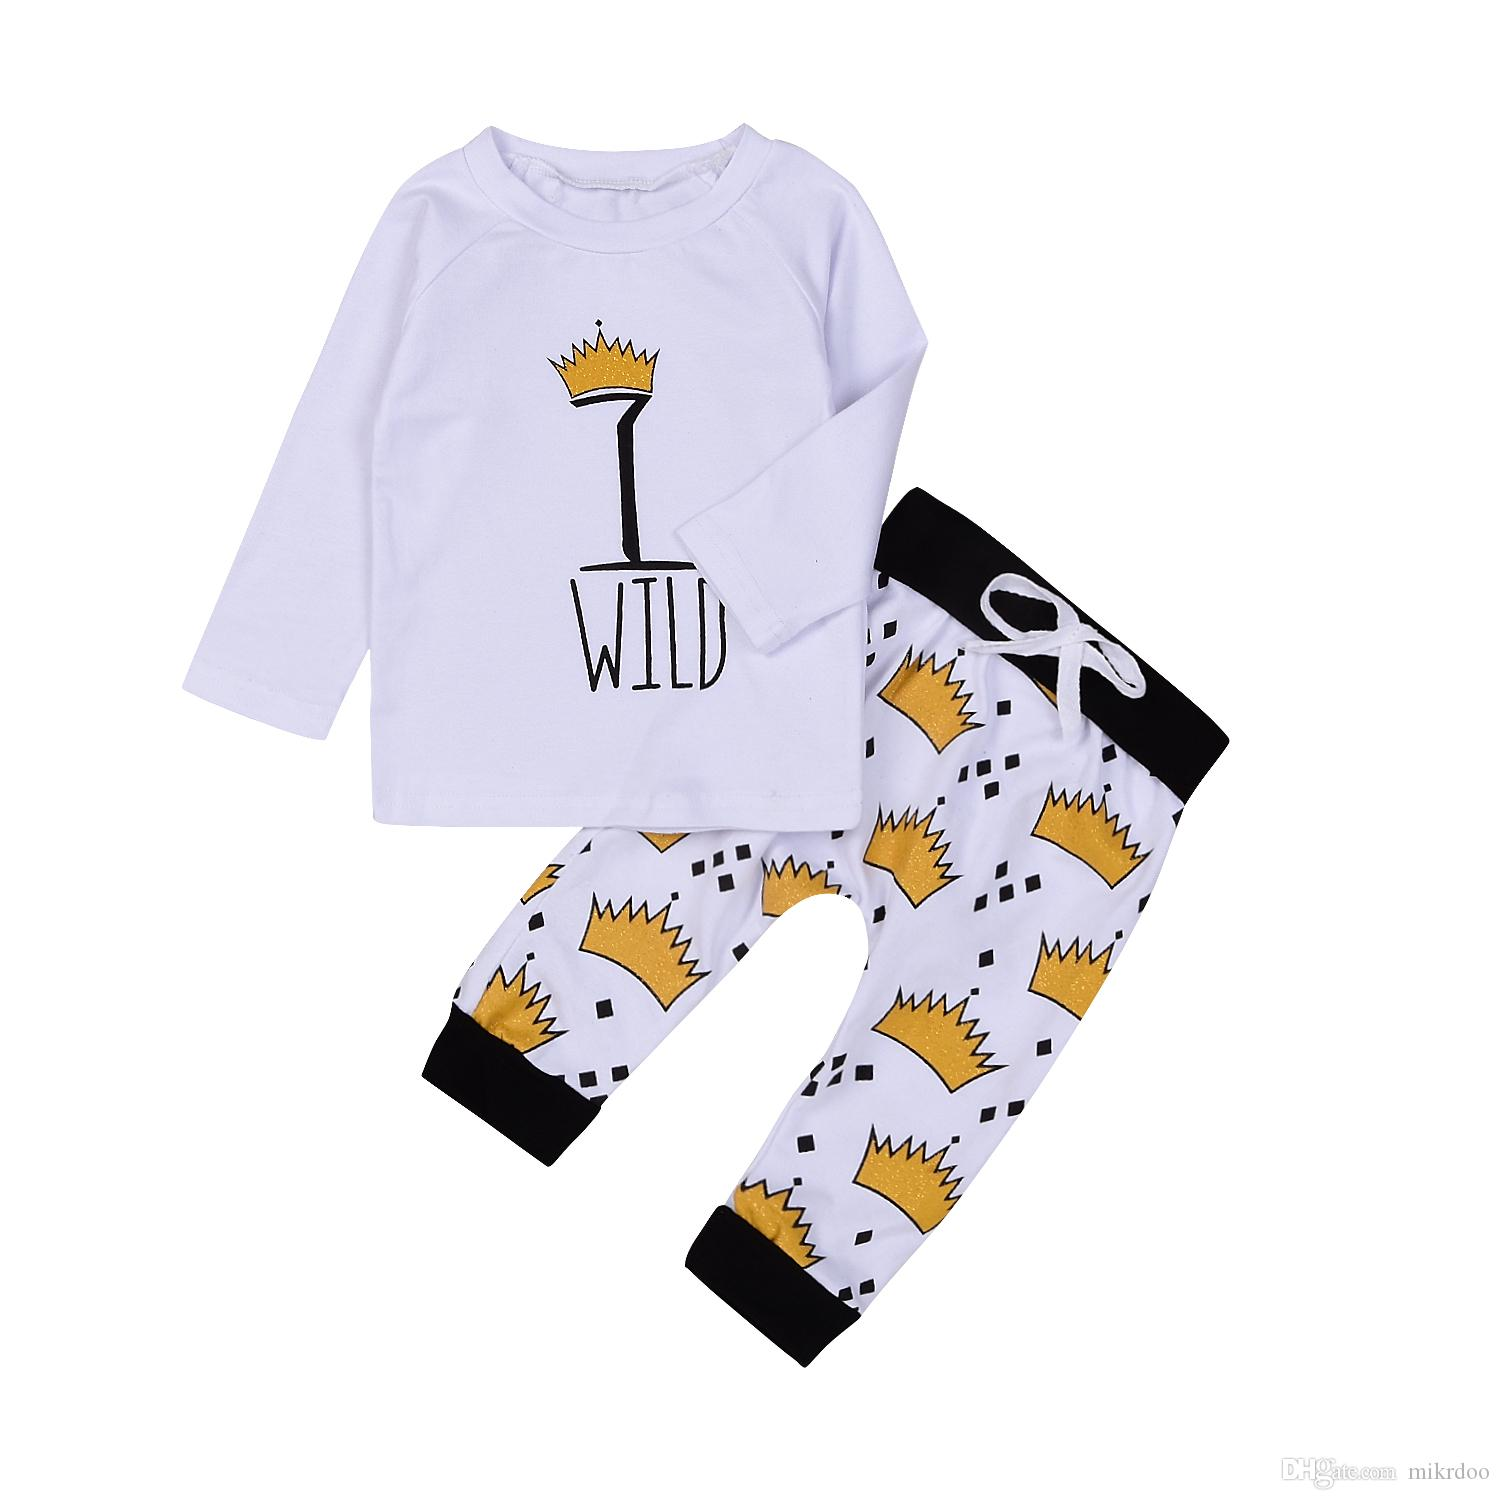 Mikrdoo Autumn New Baby Clothes Newborn Kids Baby Boy Girl WILD T-Shirt Tops Crown Long Pants Outfits Clothes Cotton Top Set Wholesale